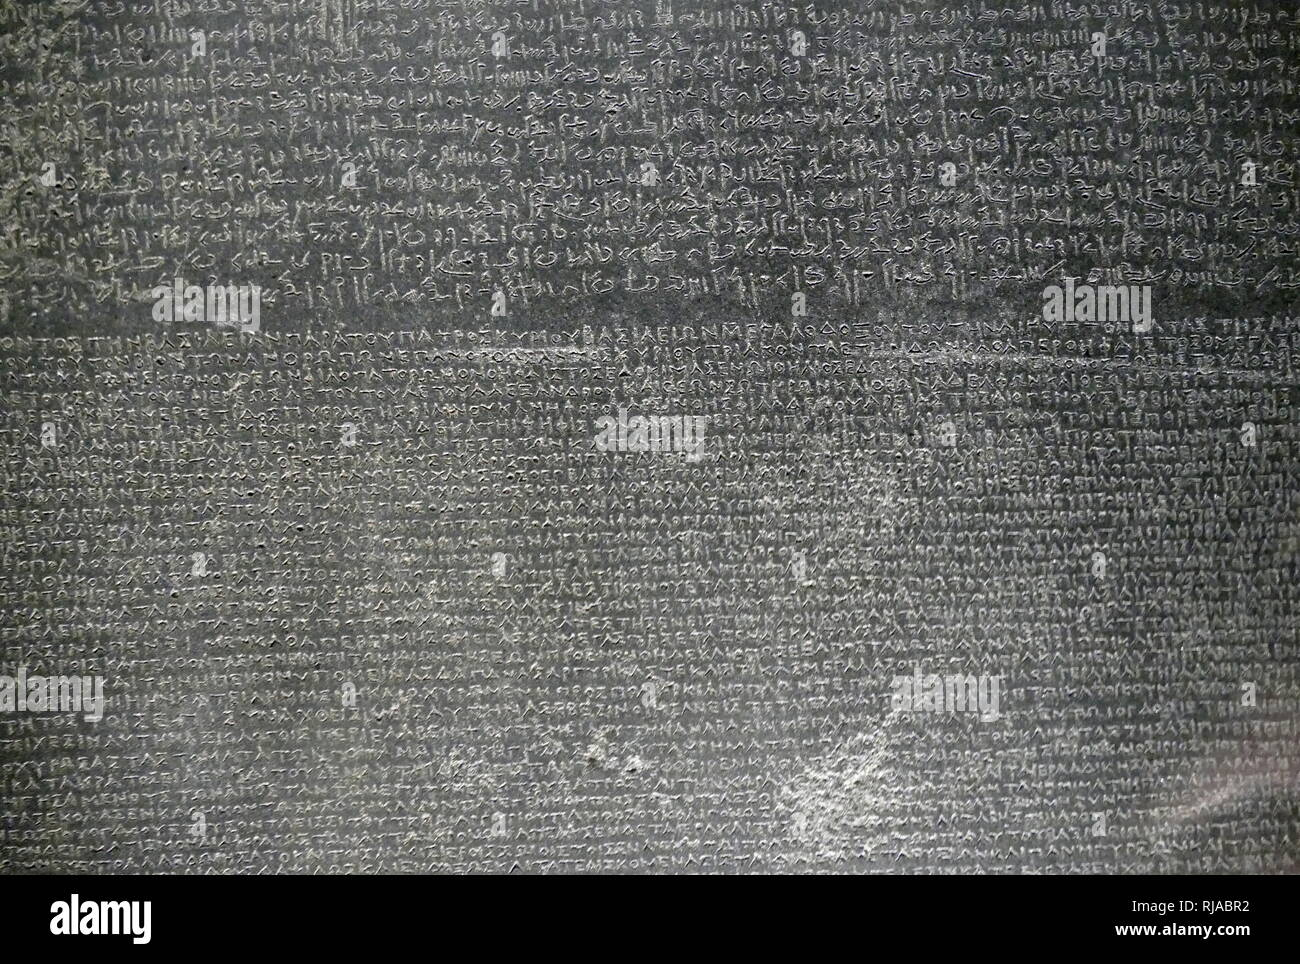 Detail from the Rosetta stone showing Demotic and Greek texts. The Rosetta Stone is a granodiorite stele, dating to 196 BC, found in 1799. It is inscribed with three versions of a decree issued at Memphis, Egypt, during the Ptolemaic dynasty on behalf of King Ptolemy V. The top and middle texts are in Ancient Egyptian using hieroglyphic script and Demotic script, respectively, while the bottom is in Ancient Greek. As the decree has only minor differences between the three versions, the Rosetta Stone proved to be the key to deciphering Egyptian hieroglyphs. Study of the decree was already under - Stock Image